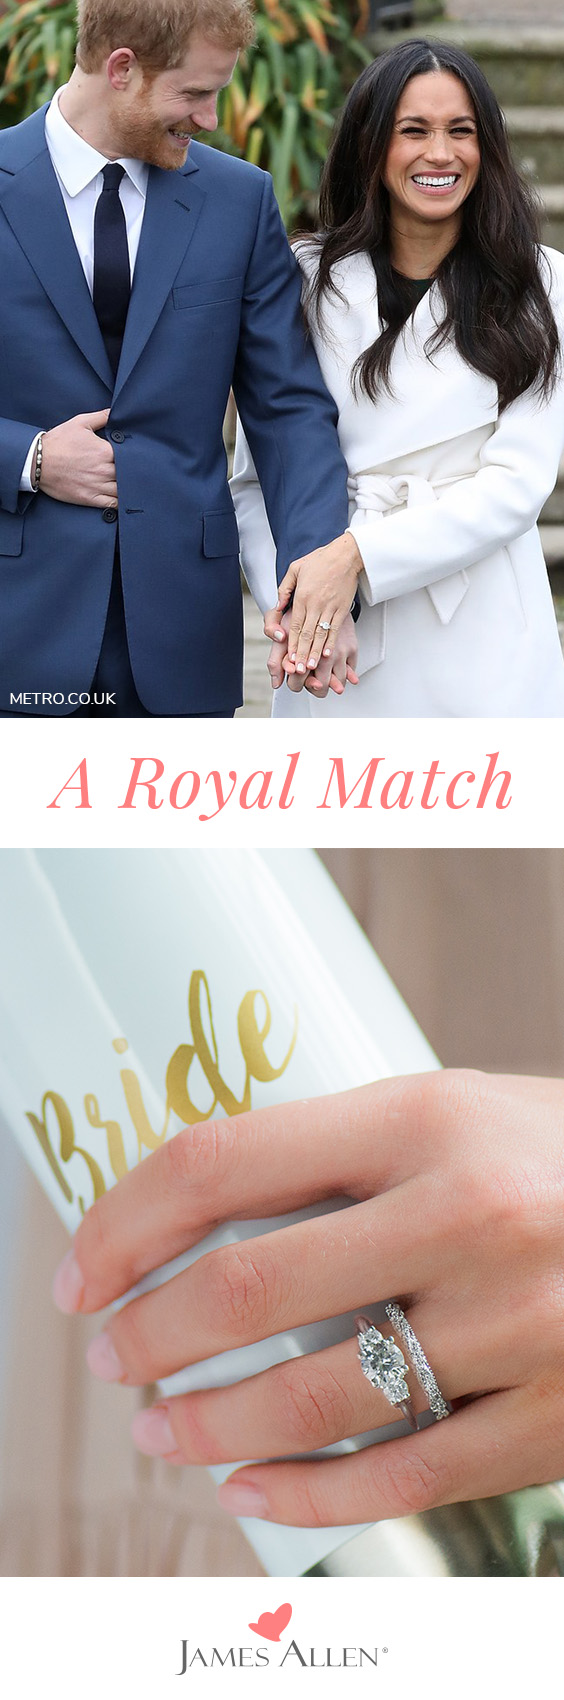 royal wedding pinterest pin